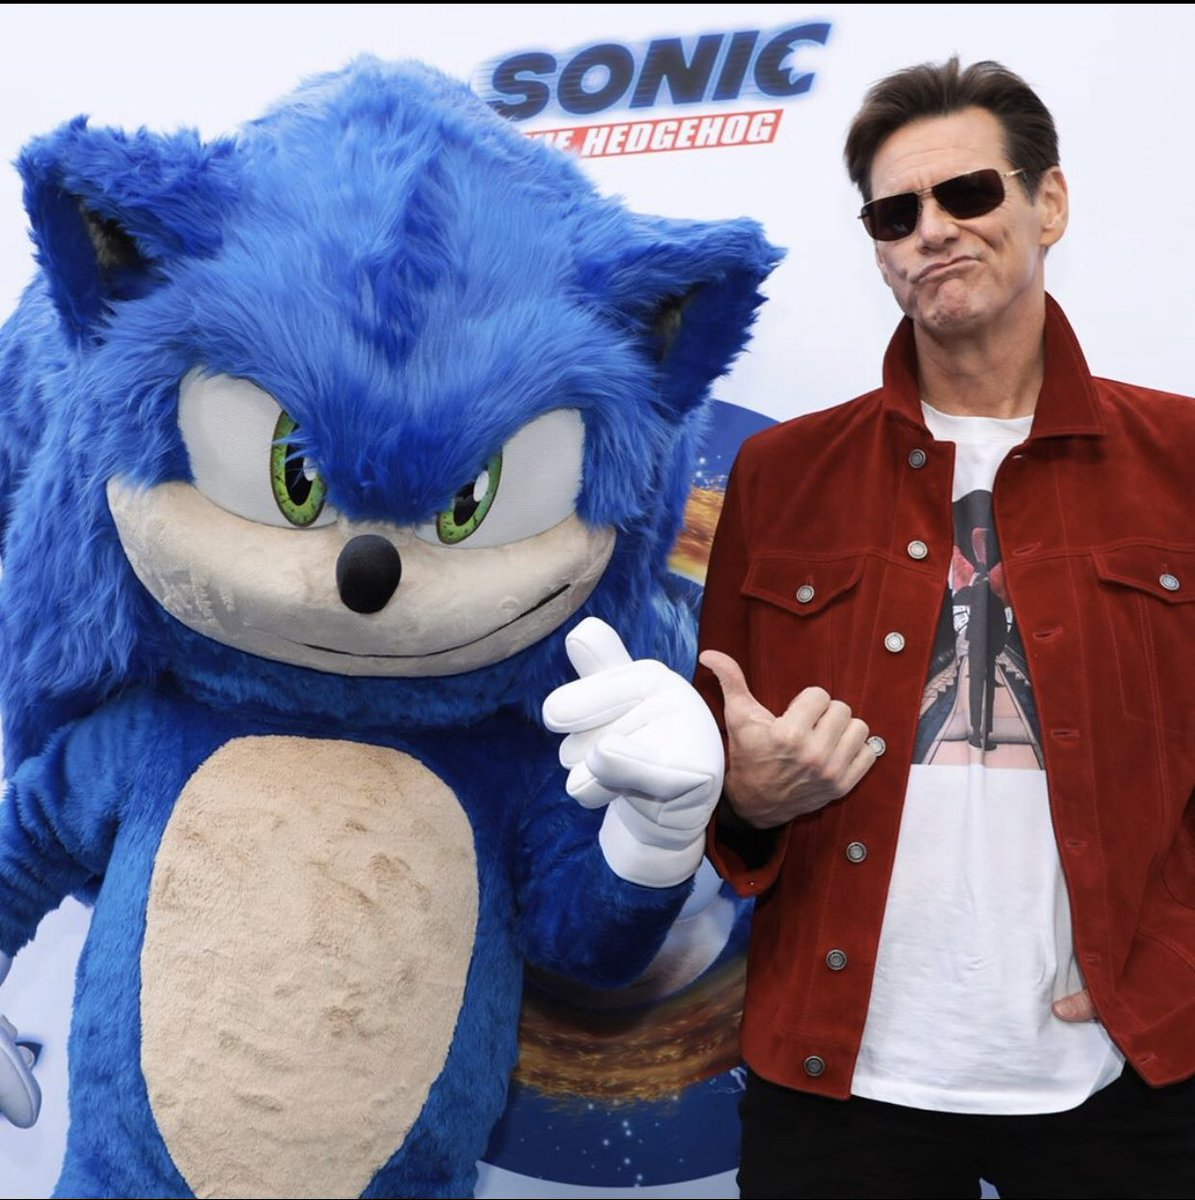 This duo  #JimCarrey #SonicMovie In New Capitol Cinemas this Friday. Get your tickets now.pic.twitter.com/gWjoIjahs1